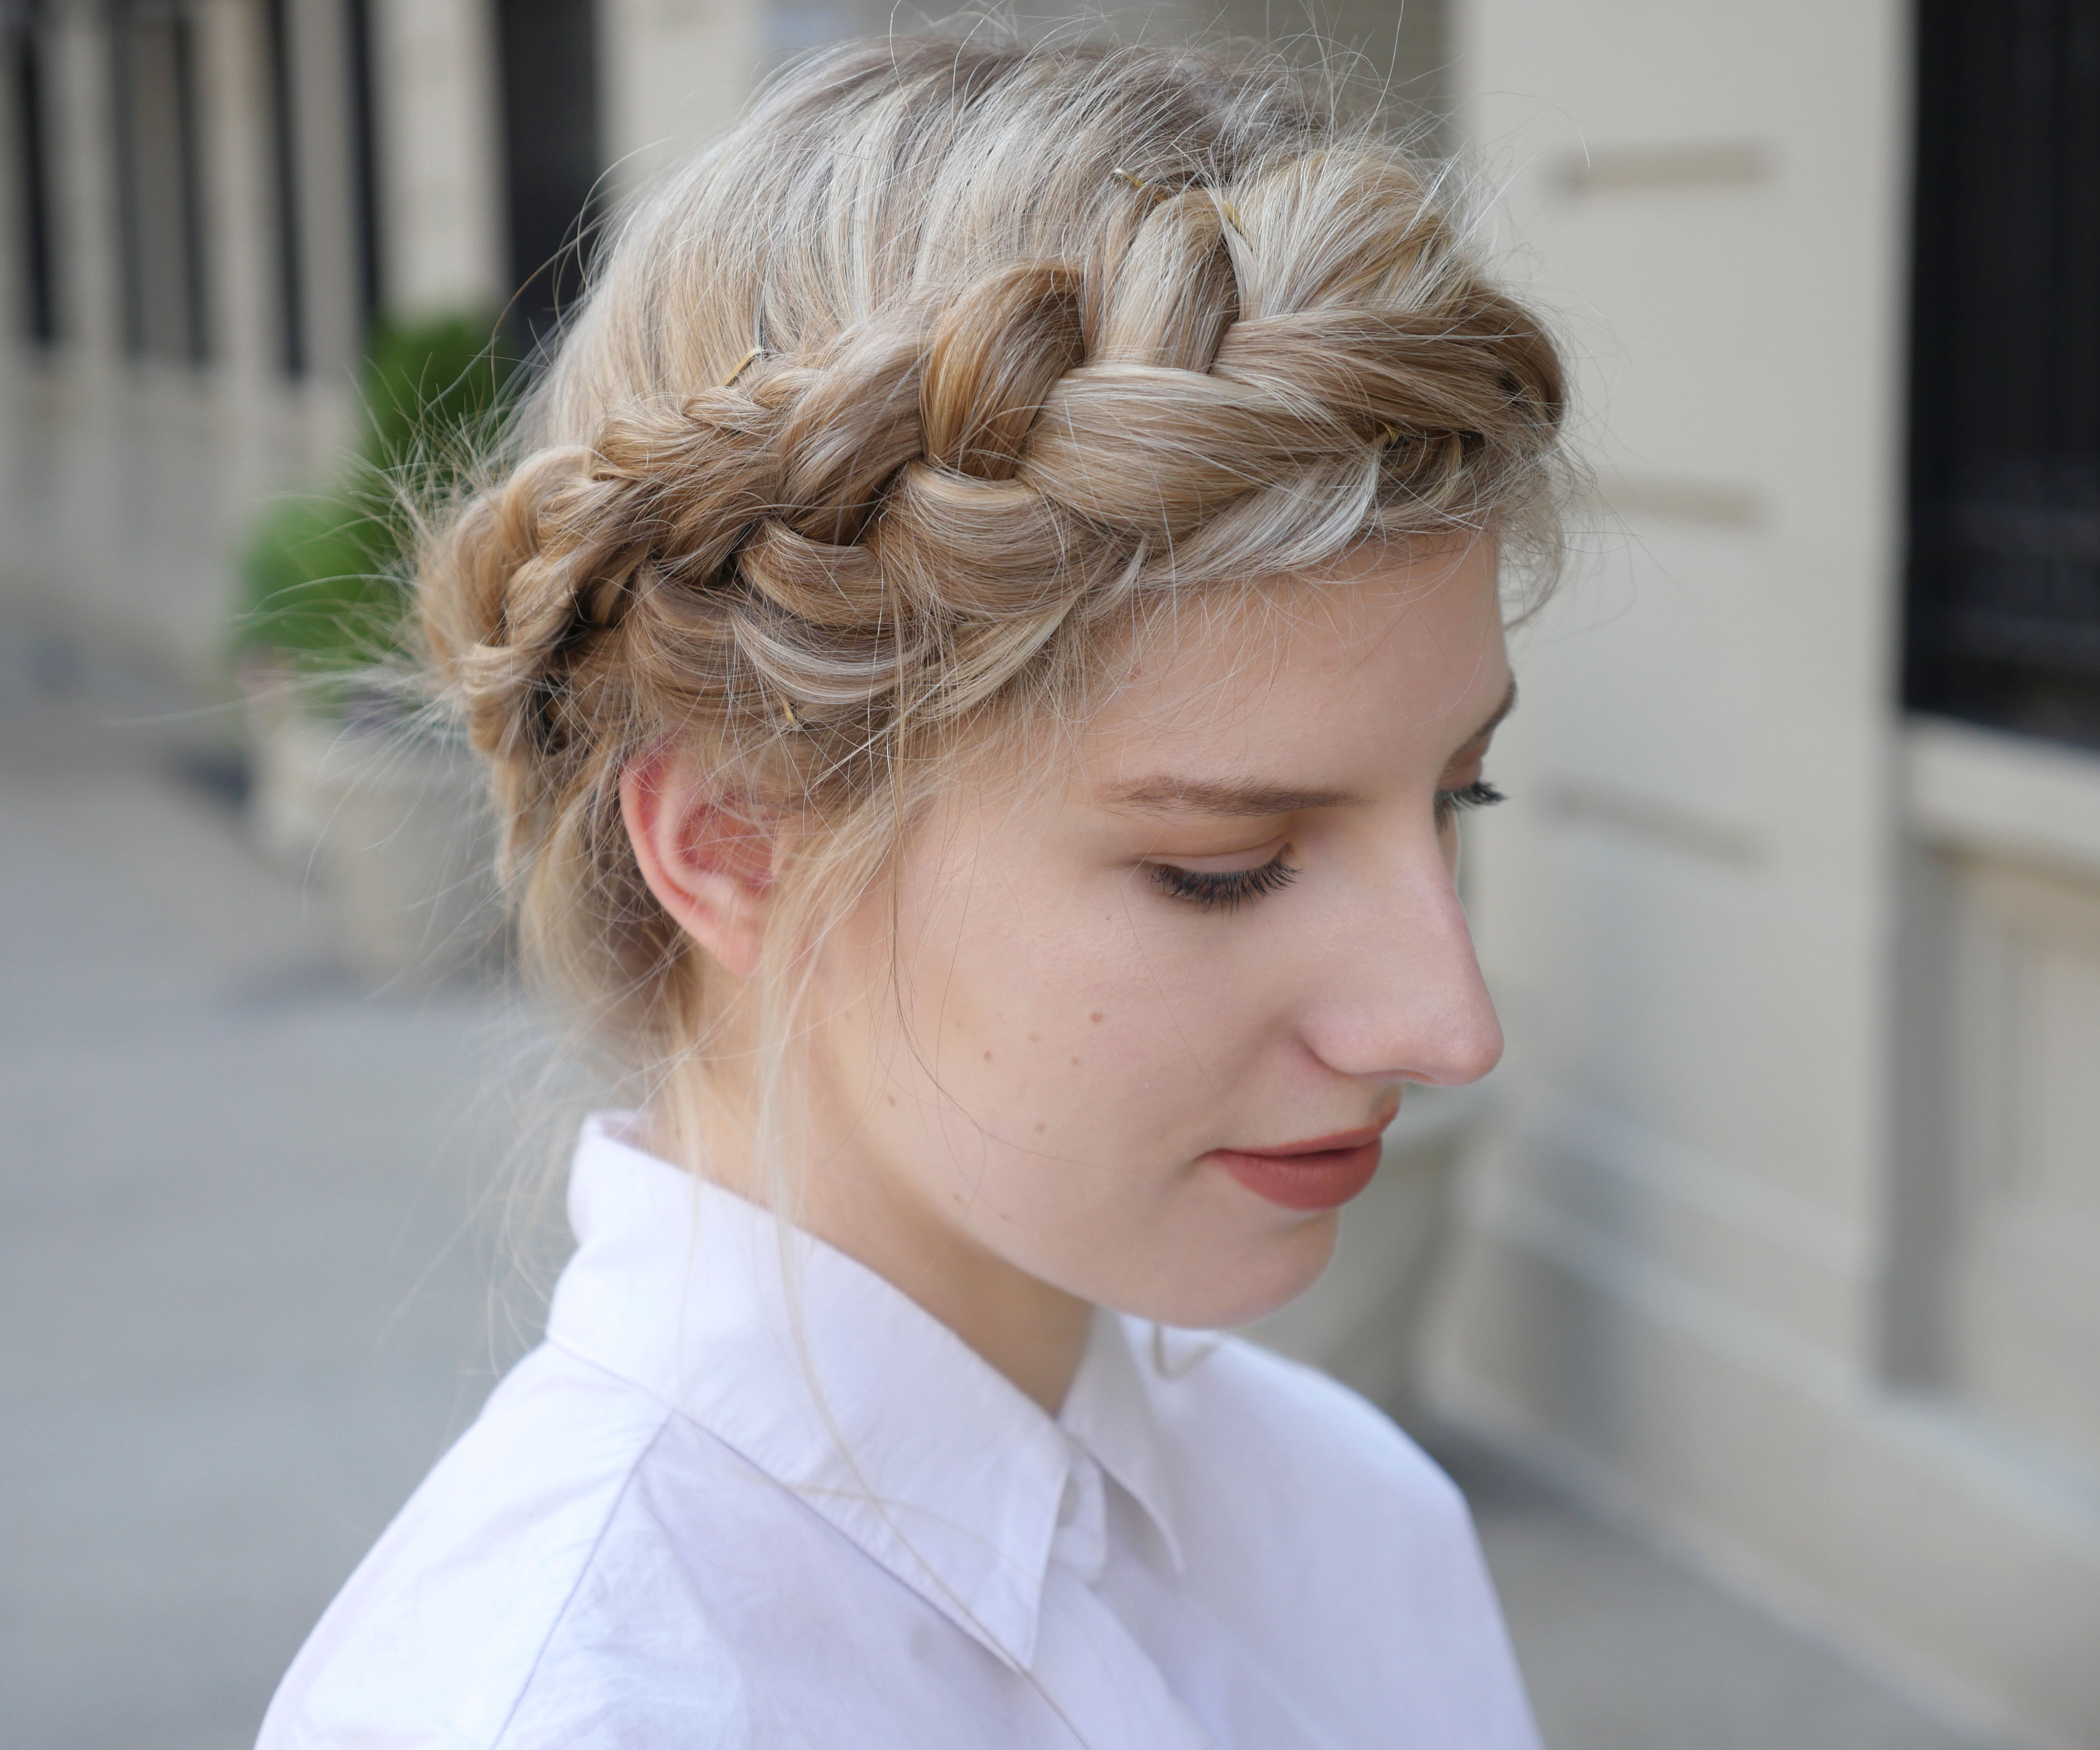 Marvelous Crown Braid 8 Steps With Pictures Instructables Schematic Wiring Diagrams Phreekkolirunnerswayorg